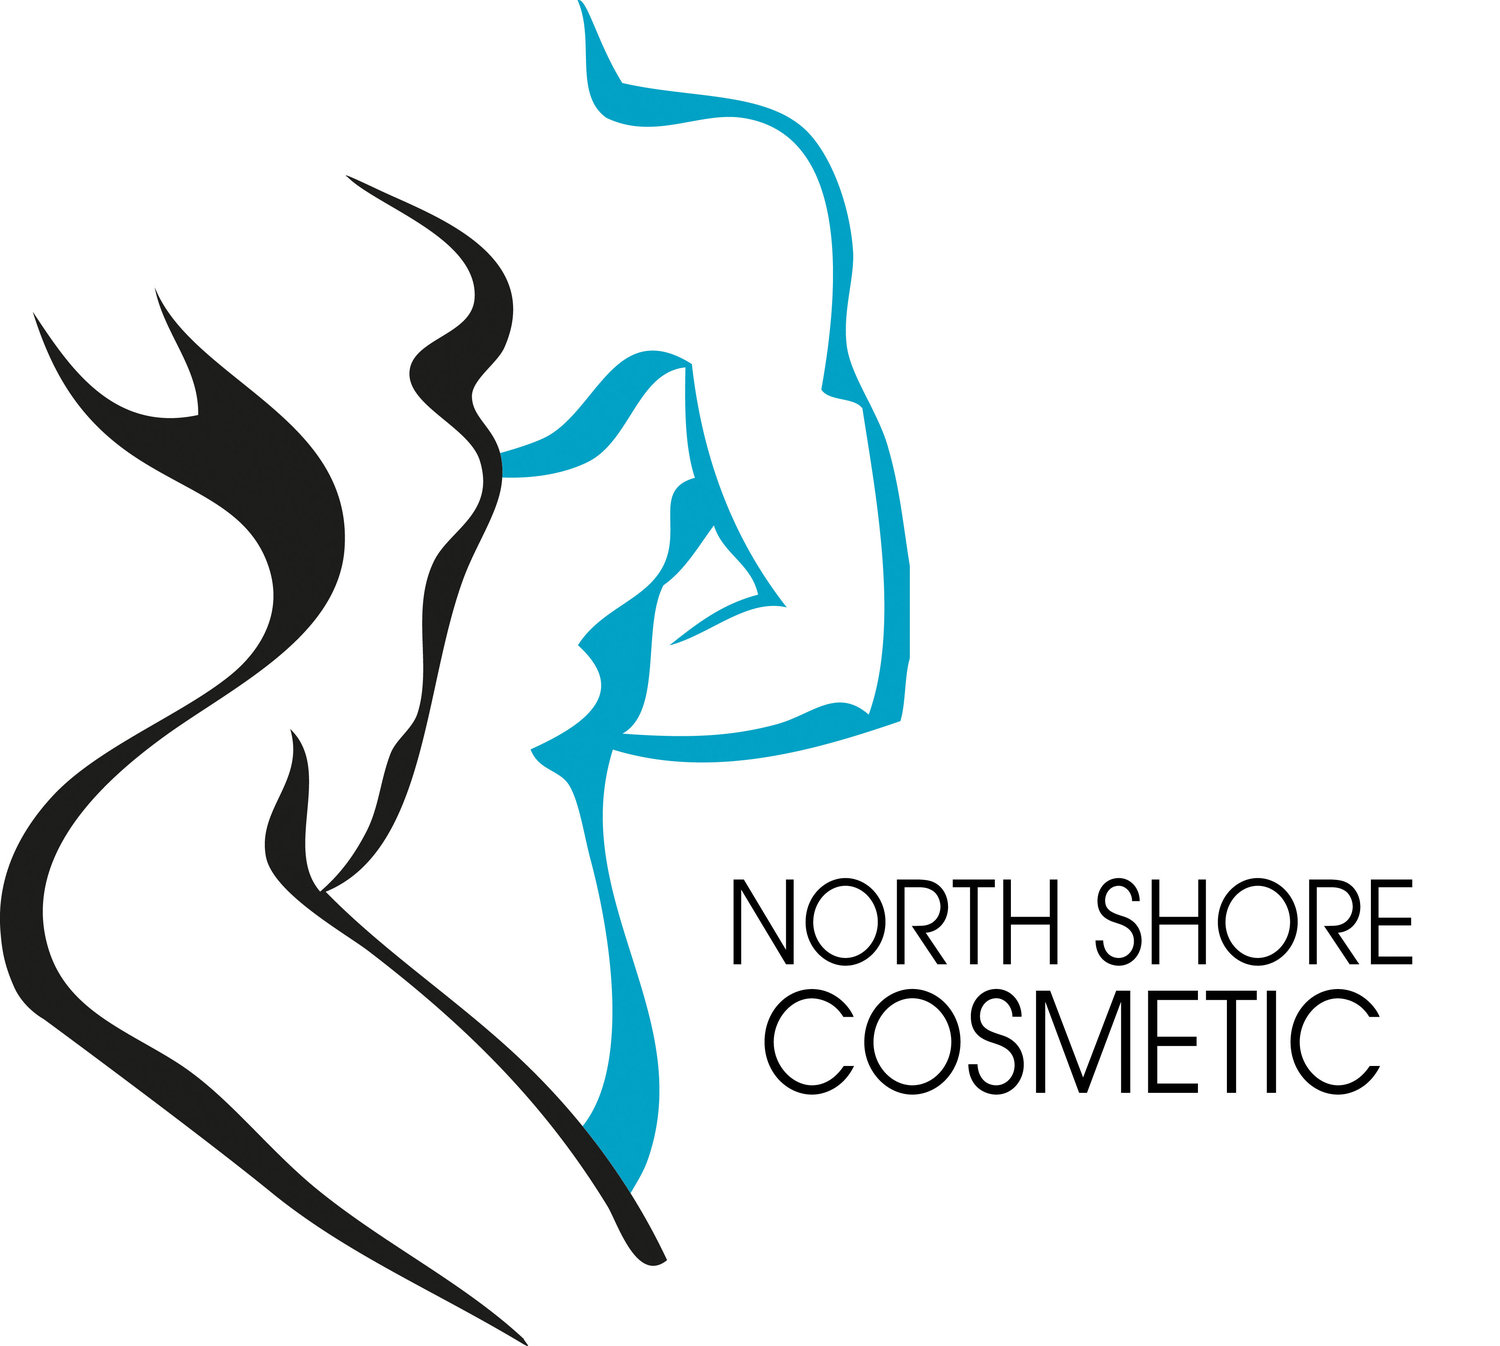 North Shore Cosmetic